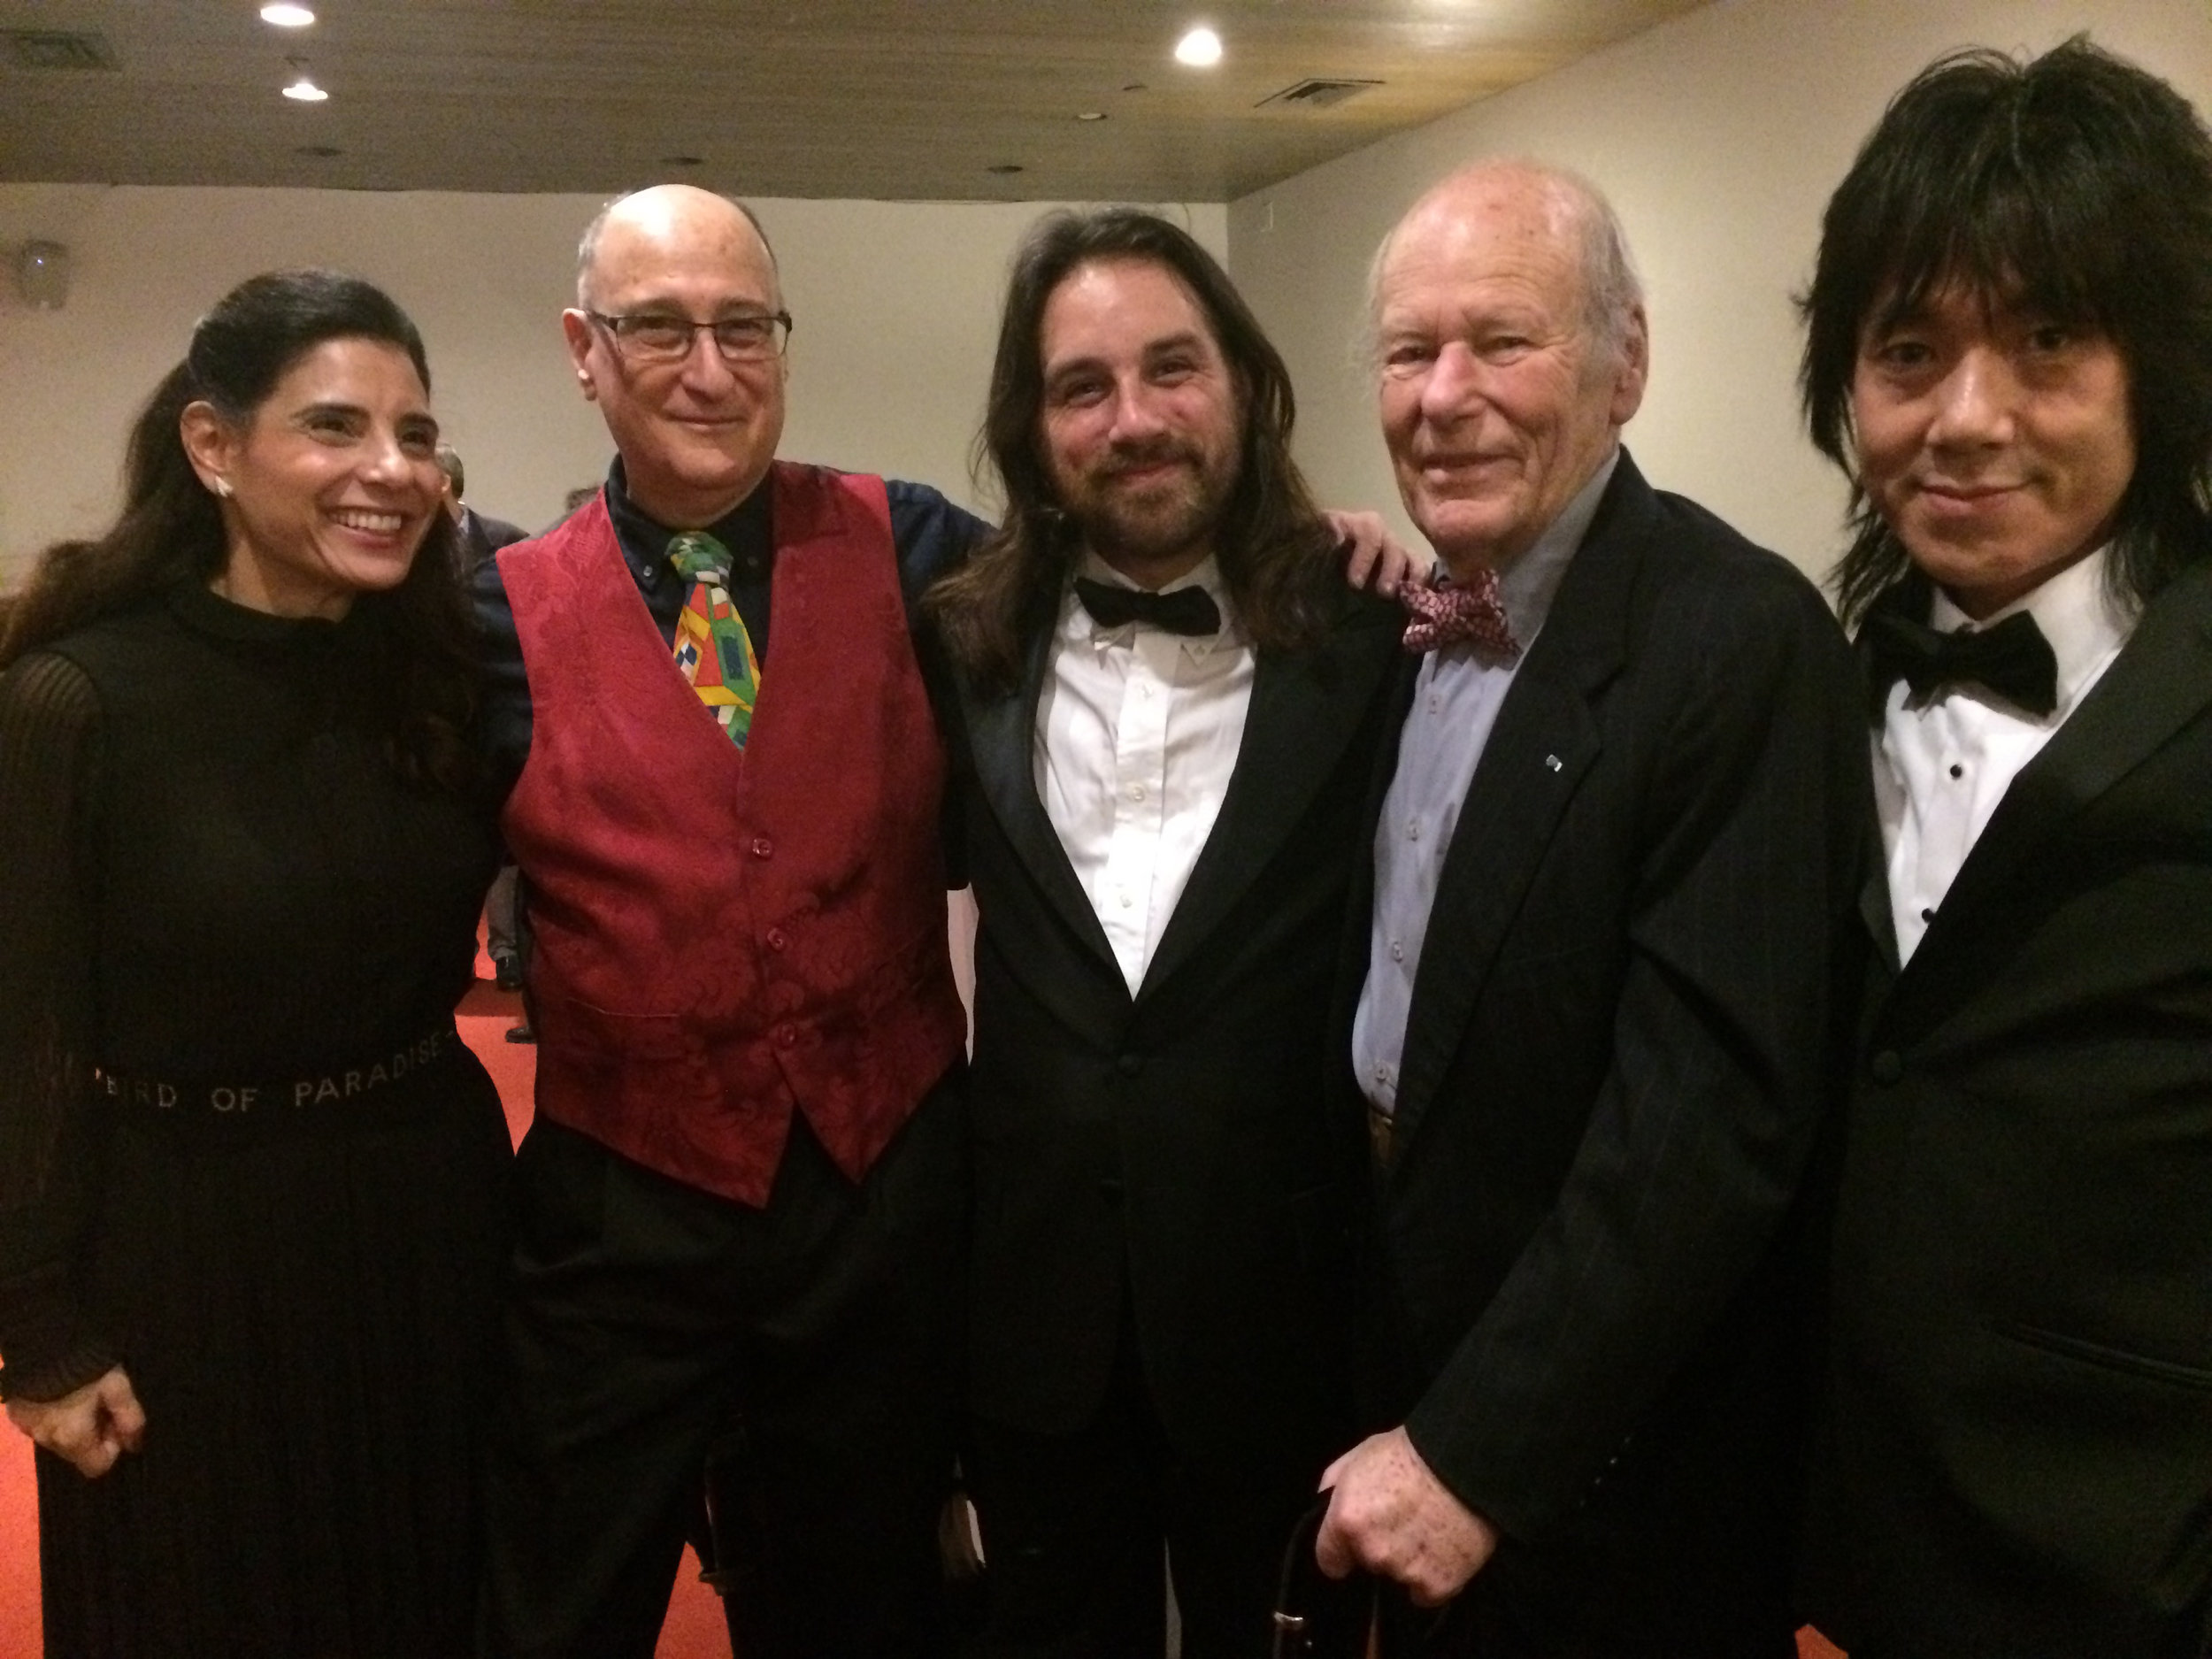 Celebrating after the  Source Music, Inc.  U.S. Premiere of full new complete Florence Gould Foundation Production with new HD multimedia and the original 8-musician scoring, Florence Gould Hall, French Institute Alliance Française, NYC, November 2018  Left to right: Leah Pisar (who narrated), composer Raphael Mostel, William Lang (trombone), Laurent de Brunhoff (eldest son of Jean de Brunhoff), Taka Kigawa (piano)  Photo: Bonnie Stein